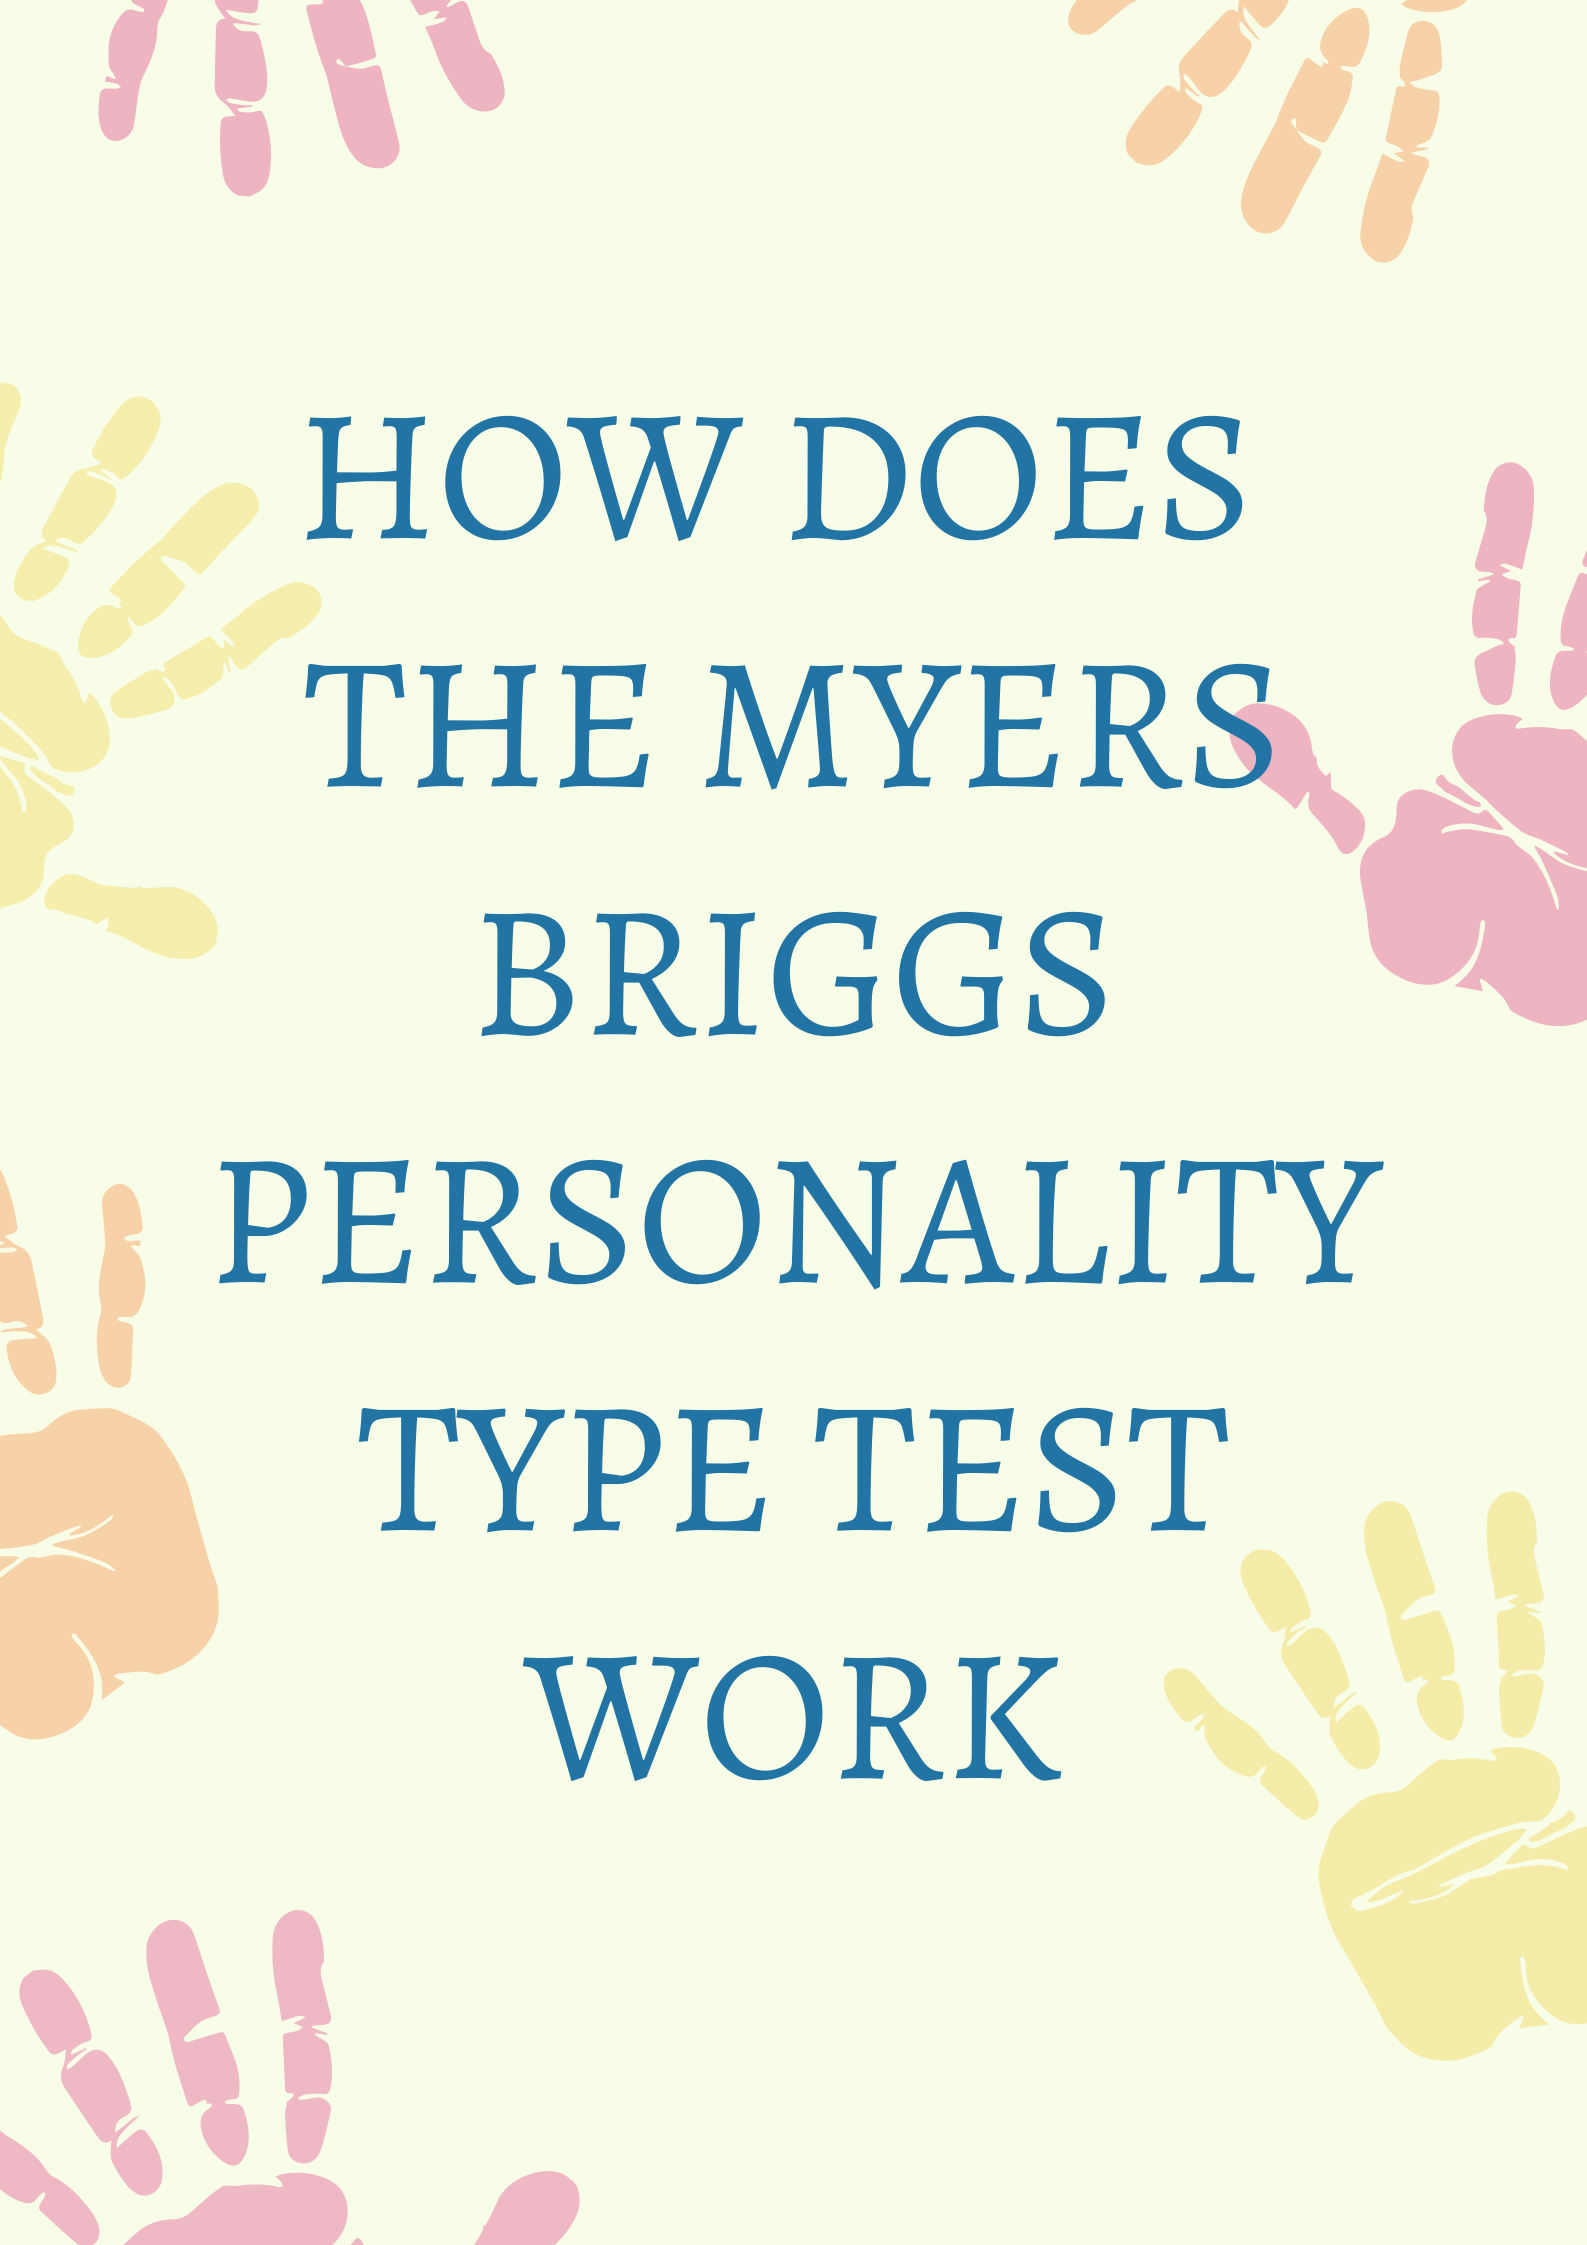 How Does the Myers Briggs Personality Type Test Work.png